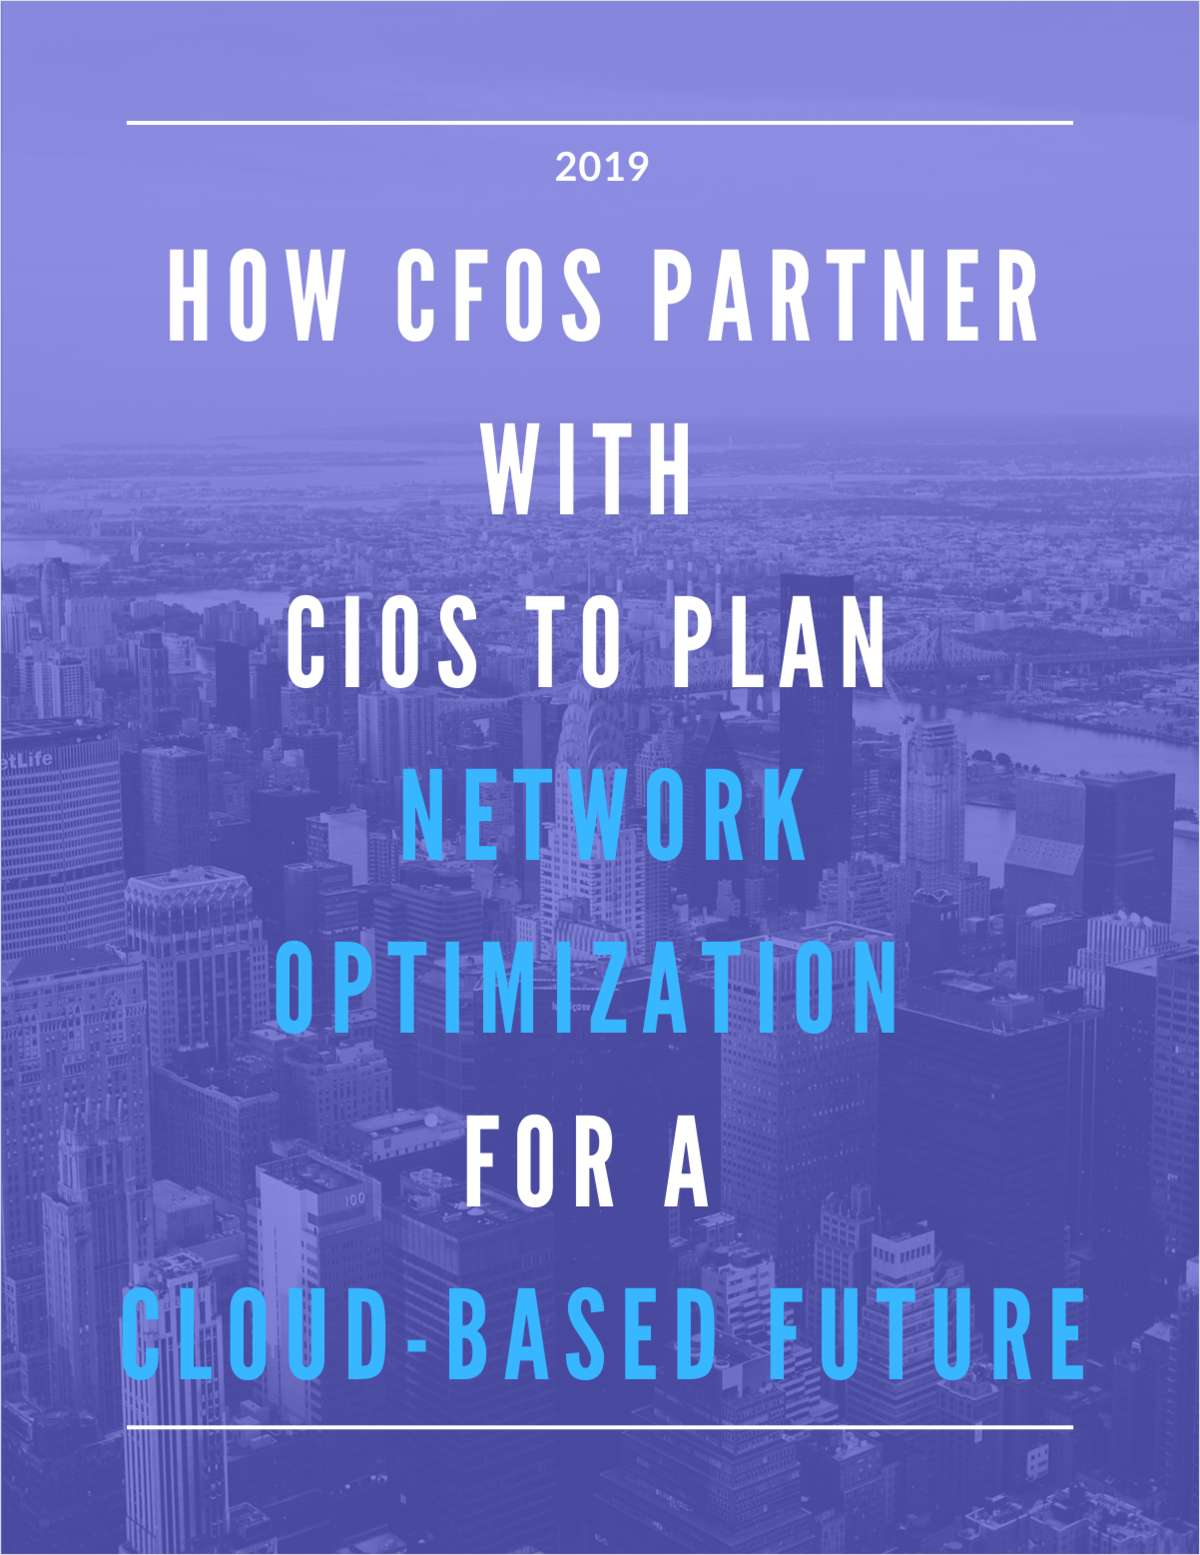 How CFOs Partner With CIOs To Plan Network Optimization For a Cloud-based Future